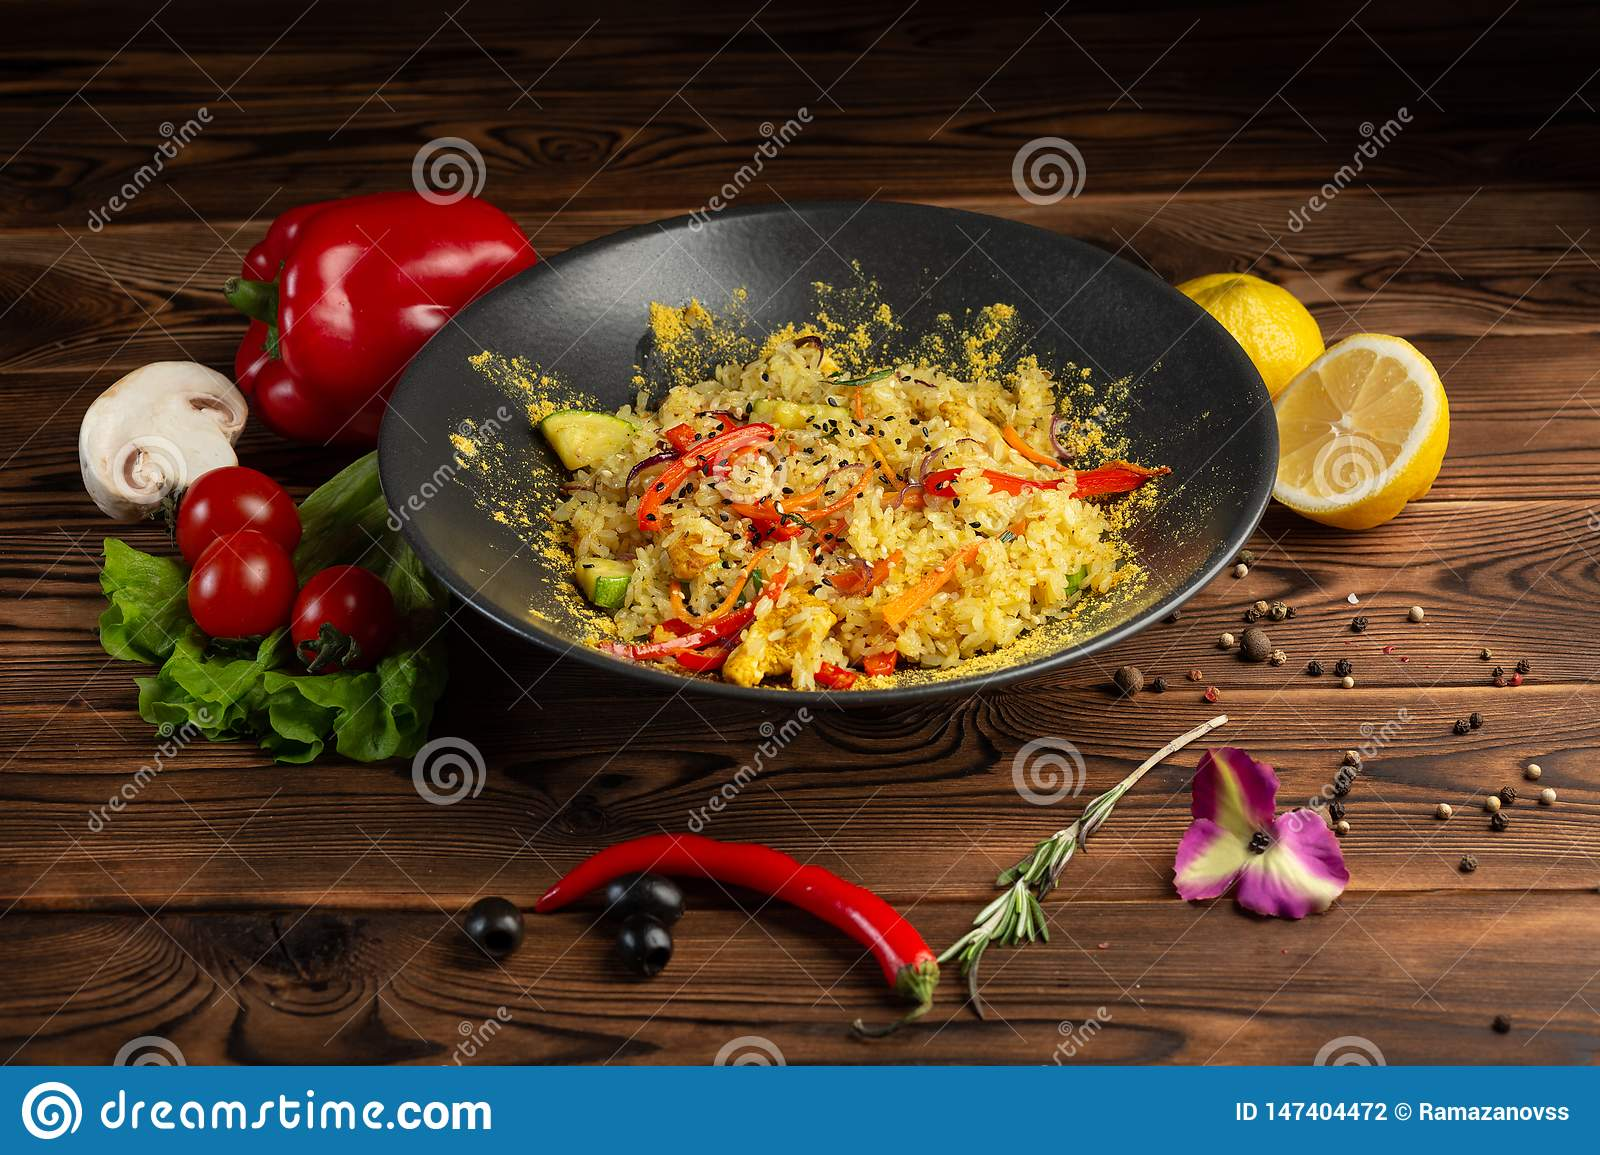 Jasmine rice with chicken in a black plate on wooden background